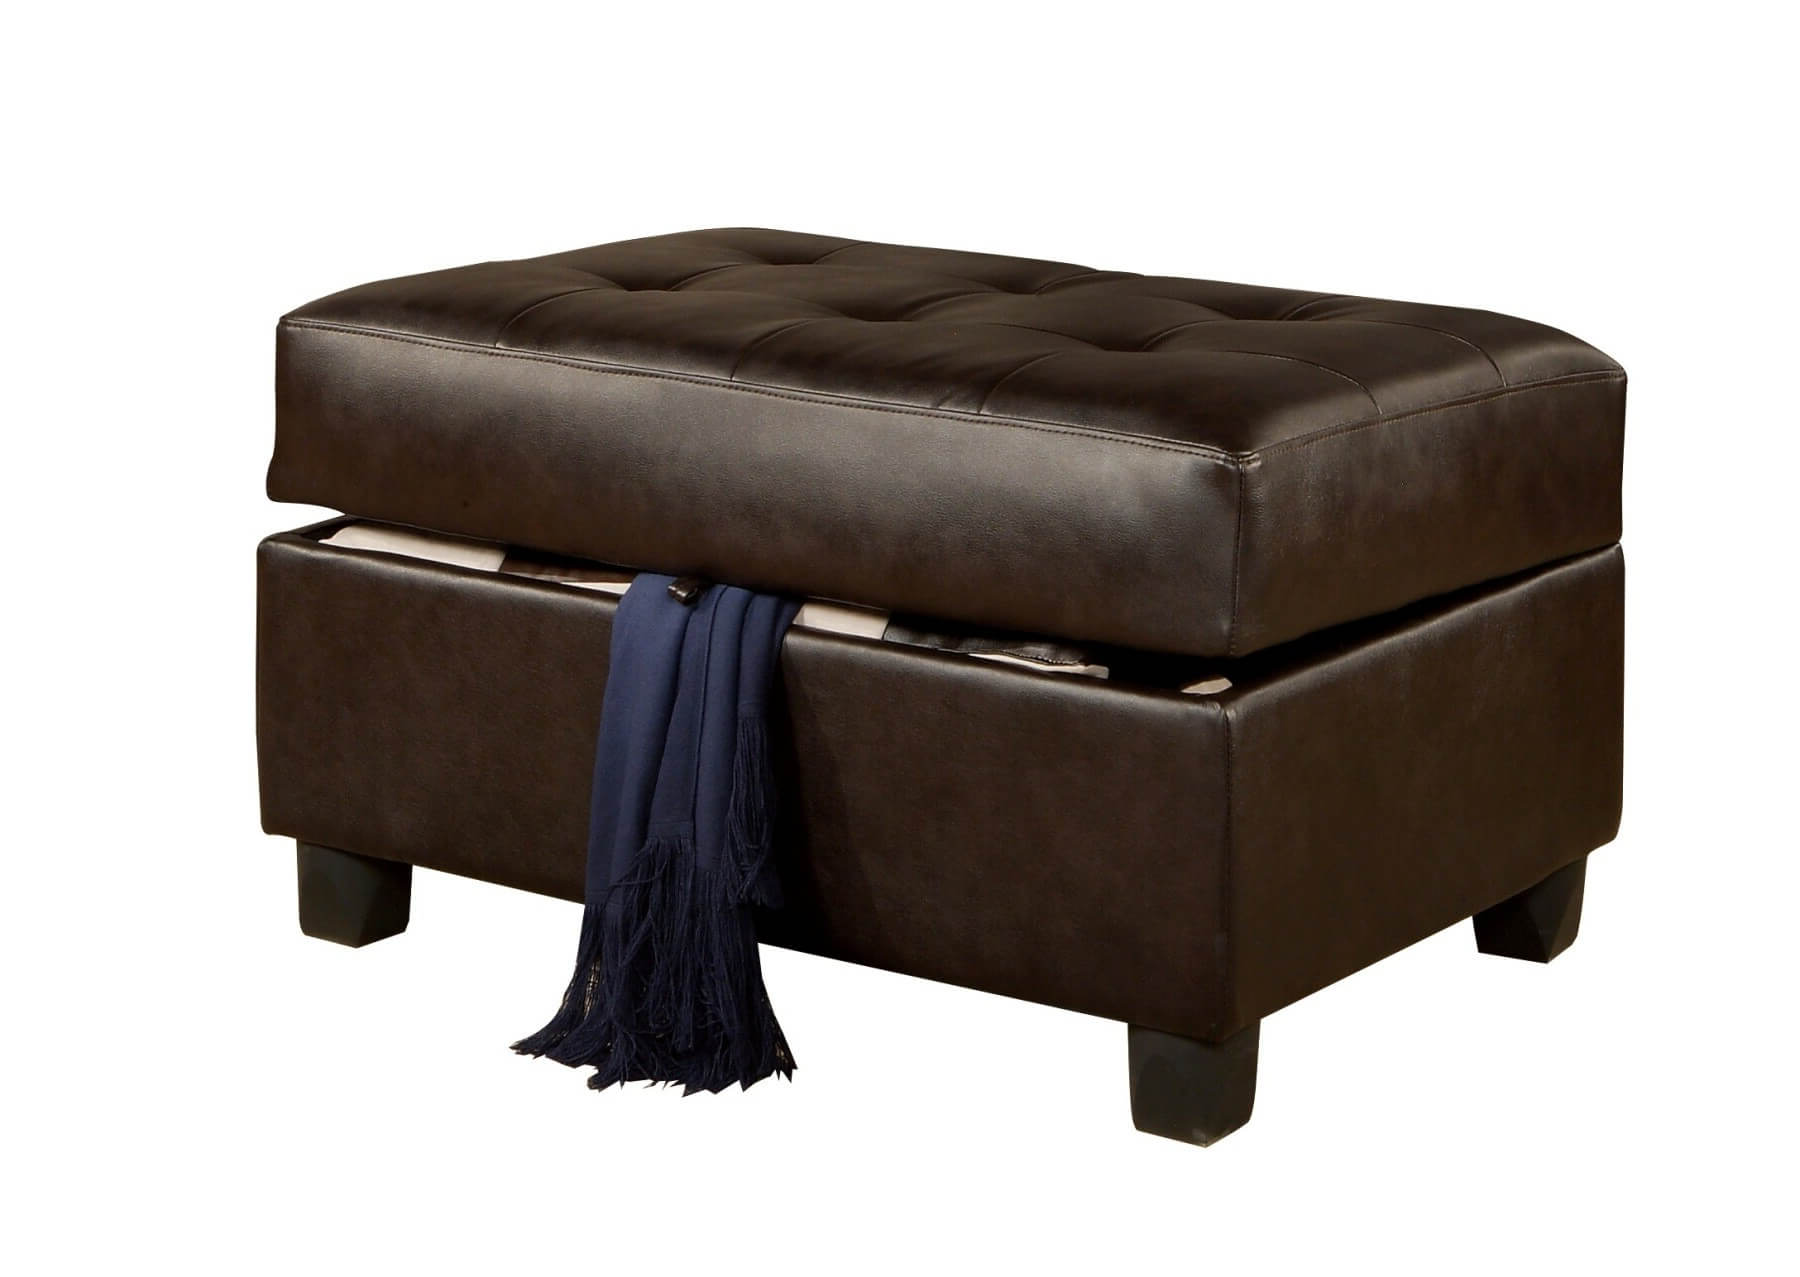 cushion coffee table with storage 15 Leather Coffee Table With Storage And Trays